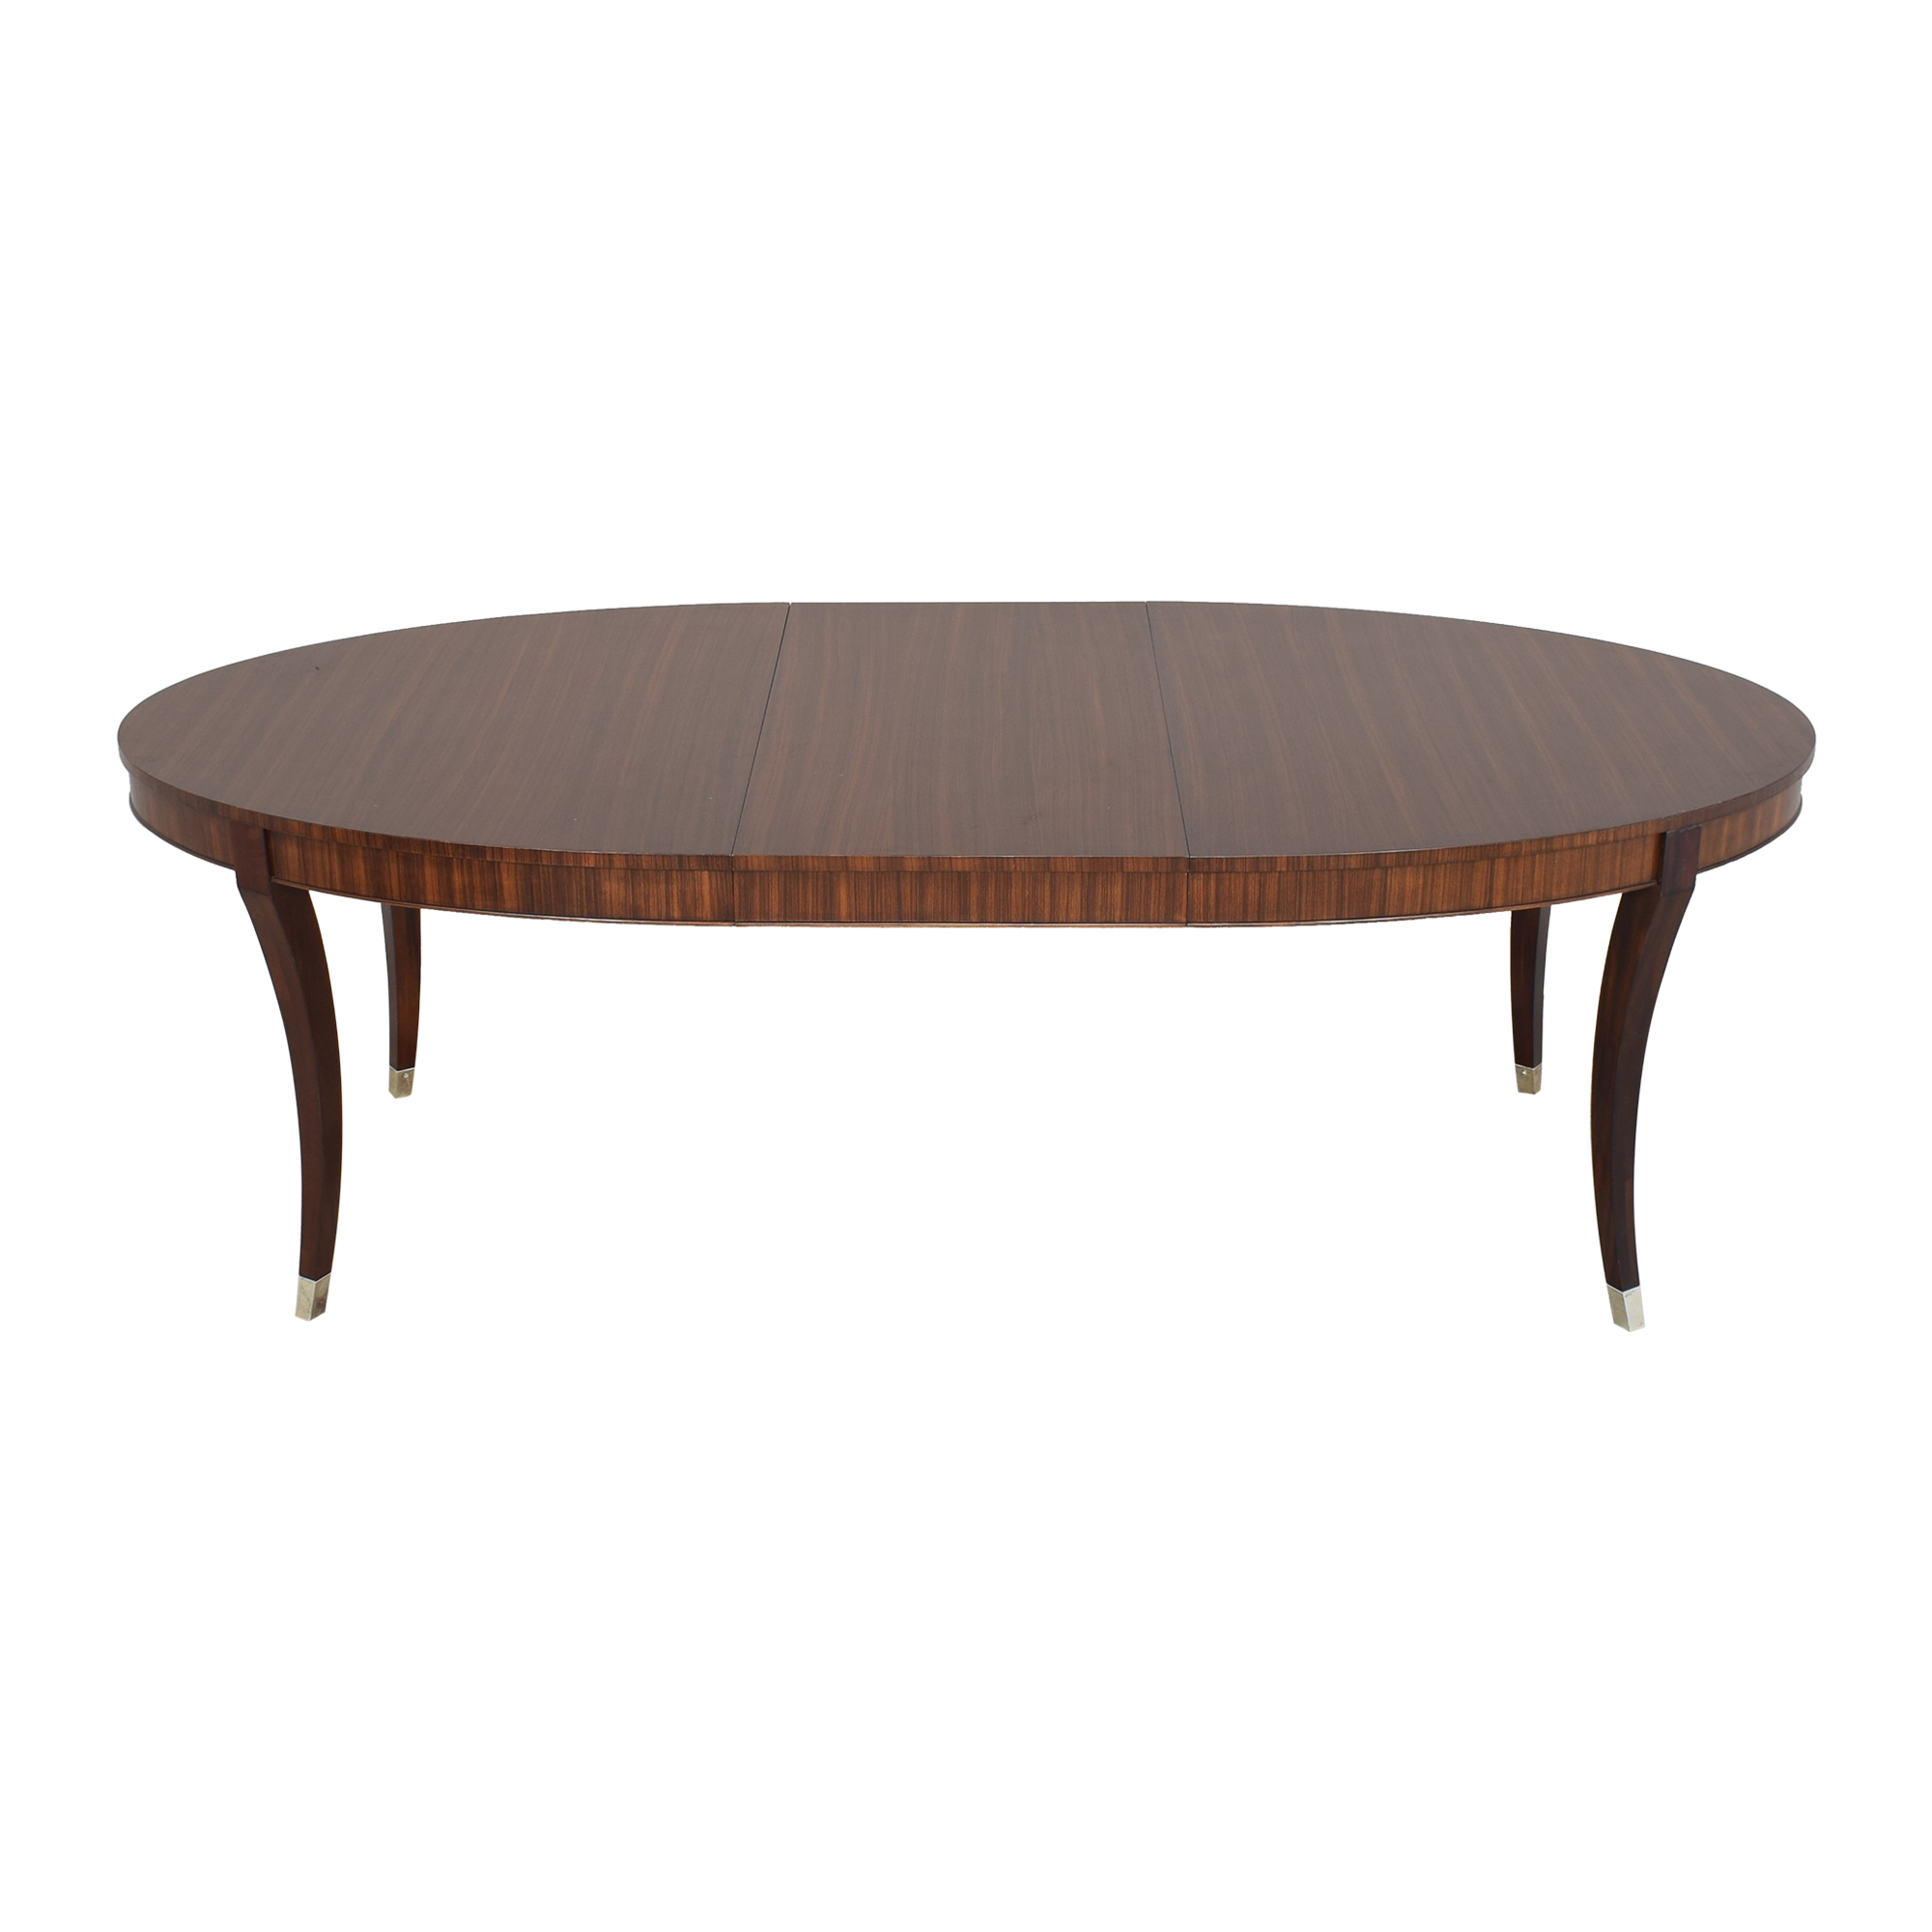 Ethan Allen Ethan Allen Hathaway Extension Dining Table on sale